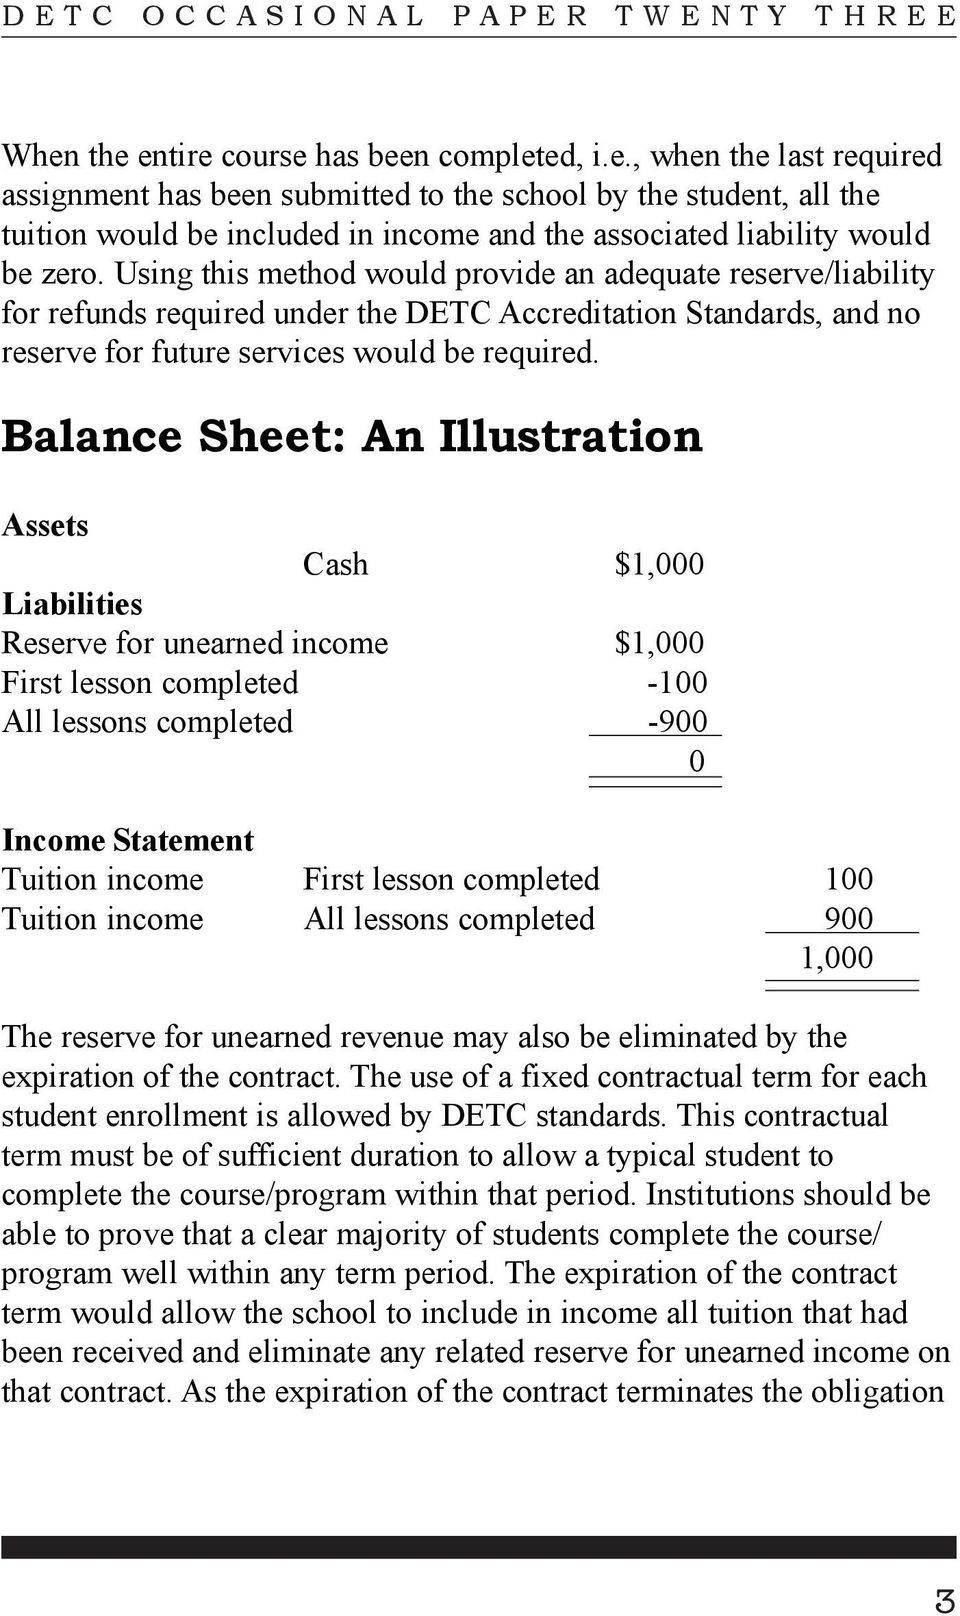 Balance Sheet: An Illustration Assets Cash $1,000 Liabilities Reserve for unearned income $1,000 First lesson completed -100 All lessons completed -900 0 Income Statement Tuition income First lesson